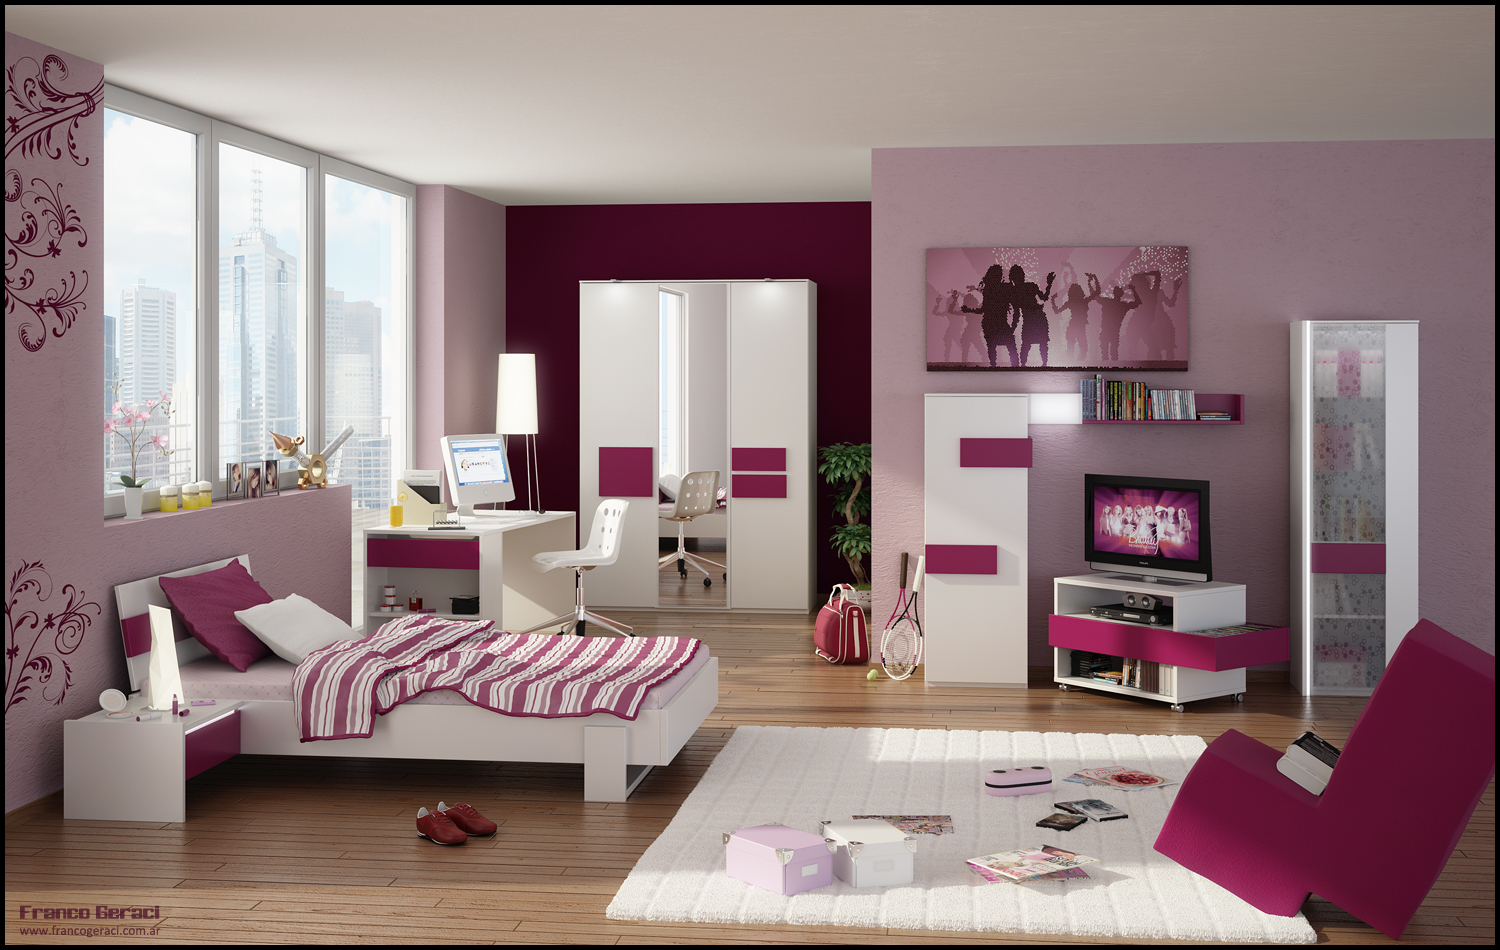 Teenage room designs for A girl room decoration